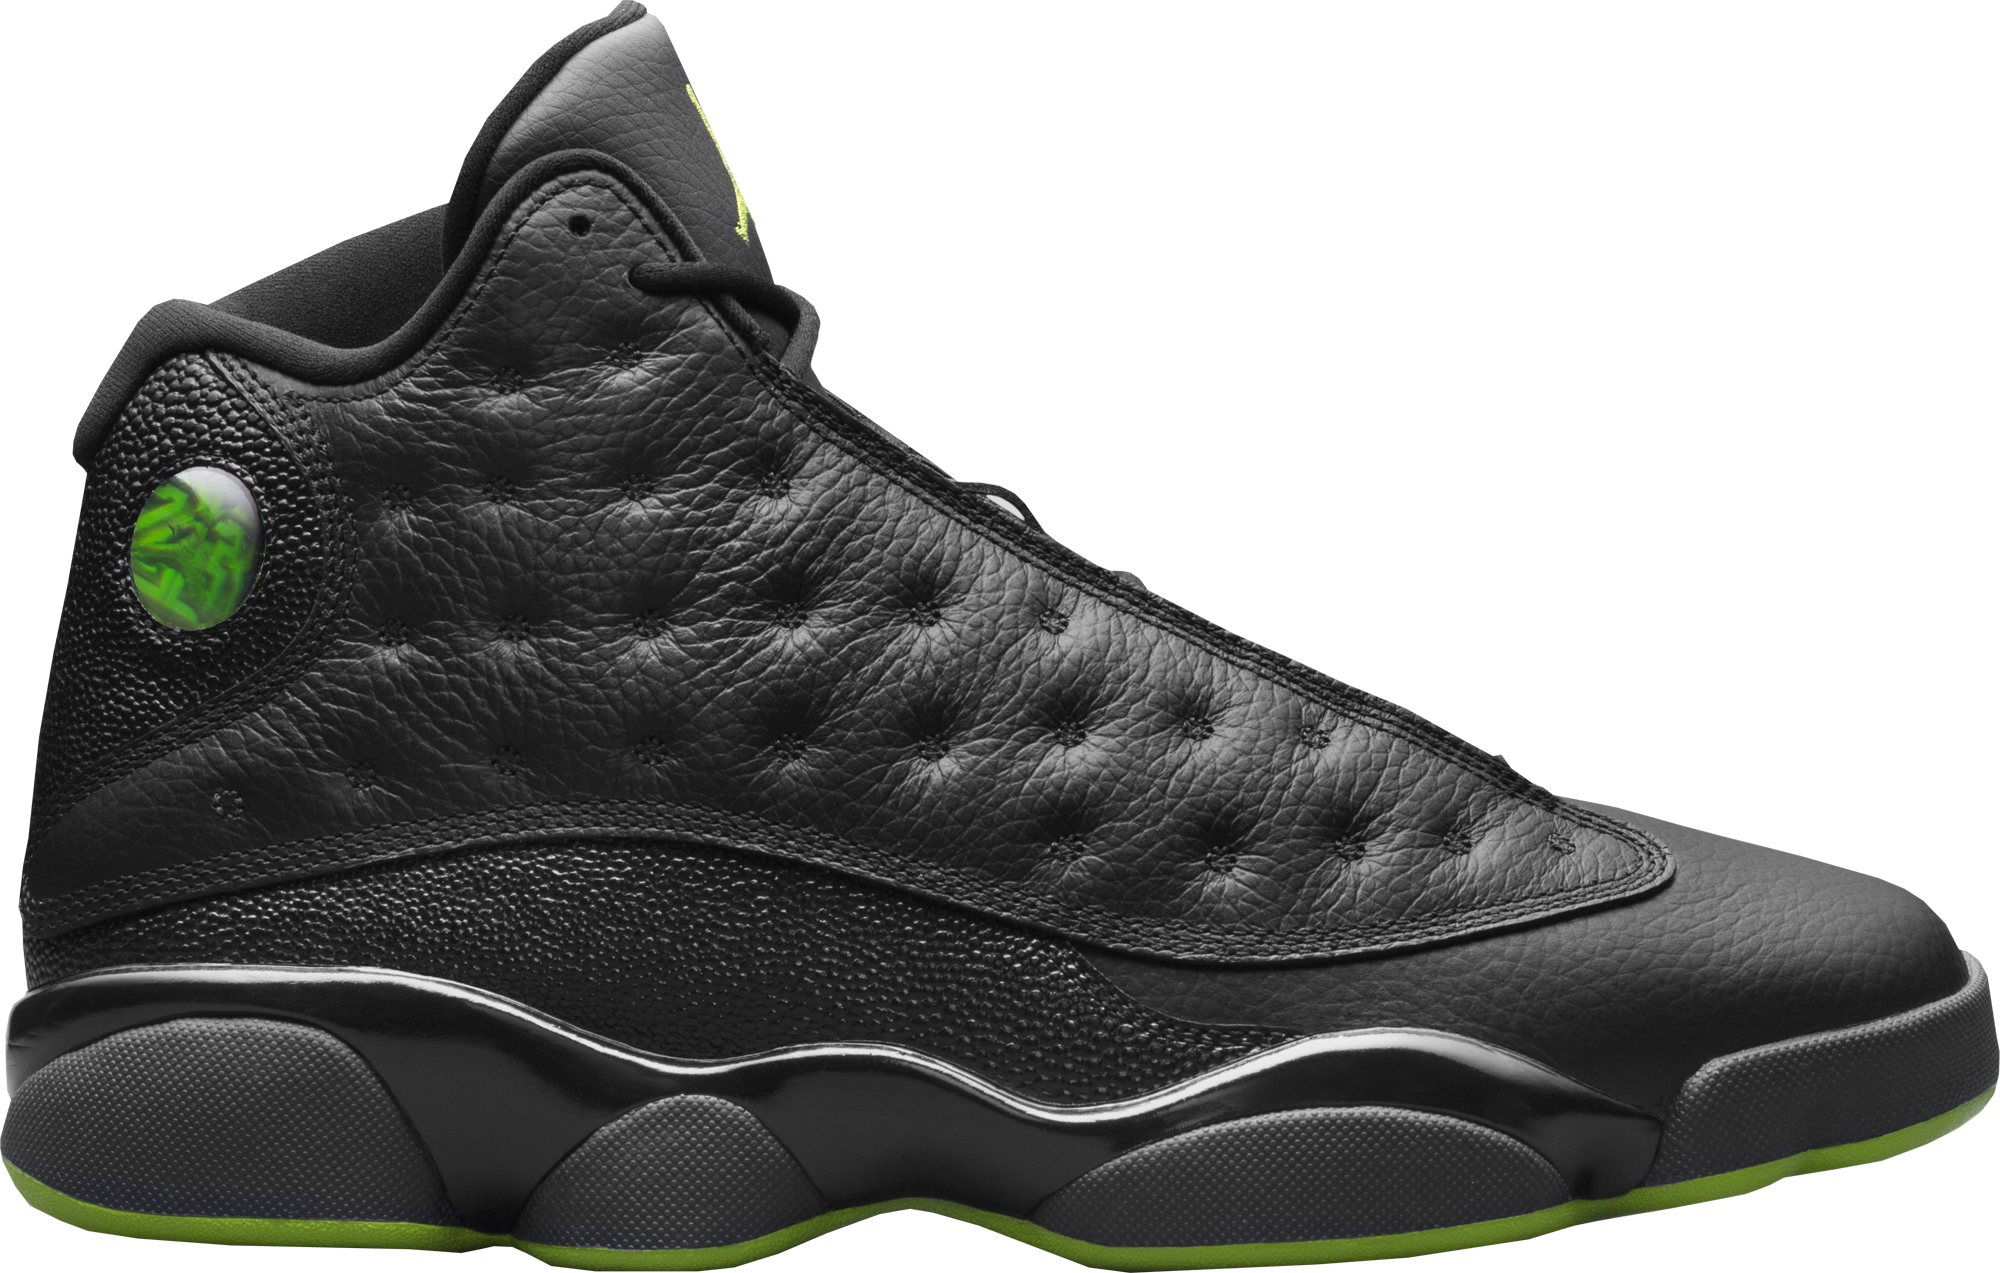 d57659443f301e discount code for jordan 13 retro altitude 2017 ee7b9 336ad